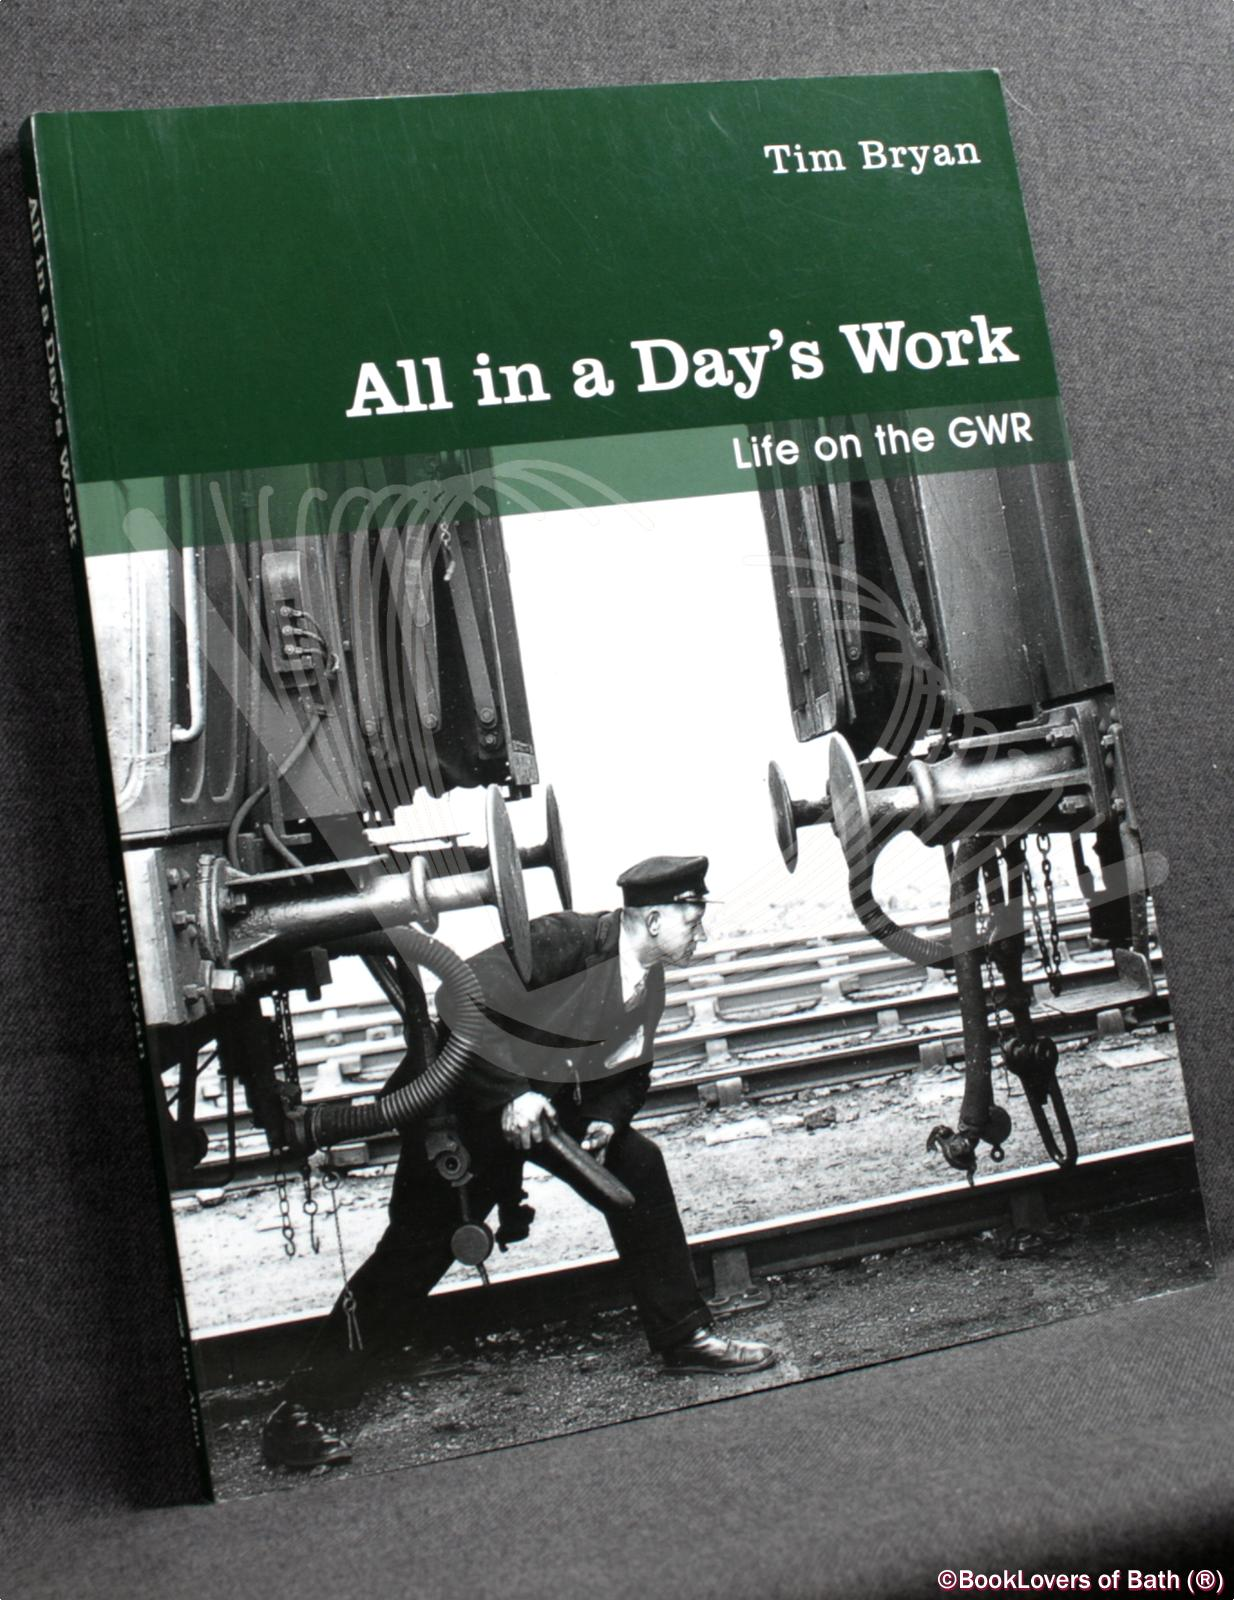 All in a Day's Work: Life on the GWR - Tim Bryan